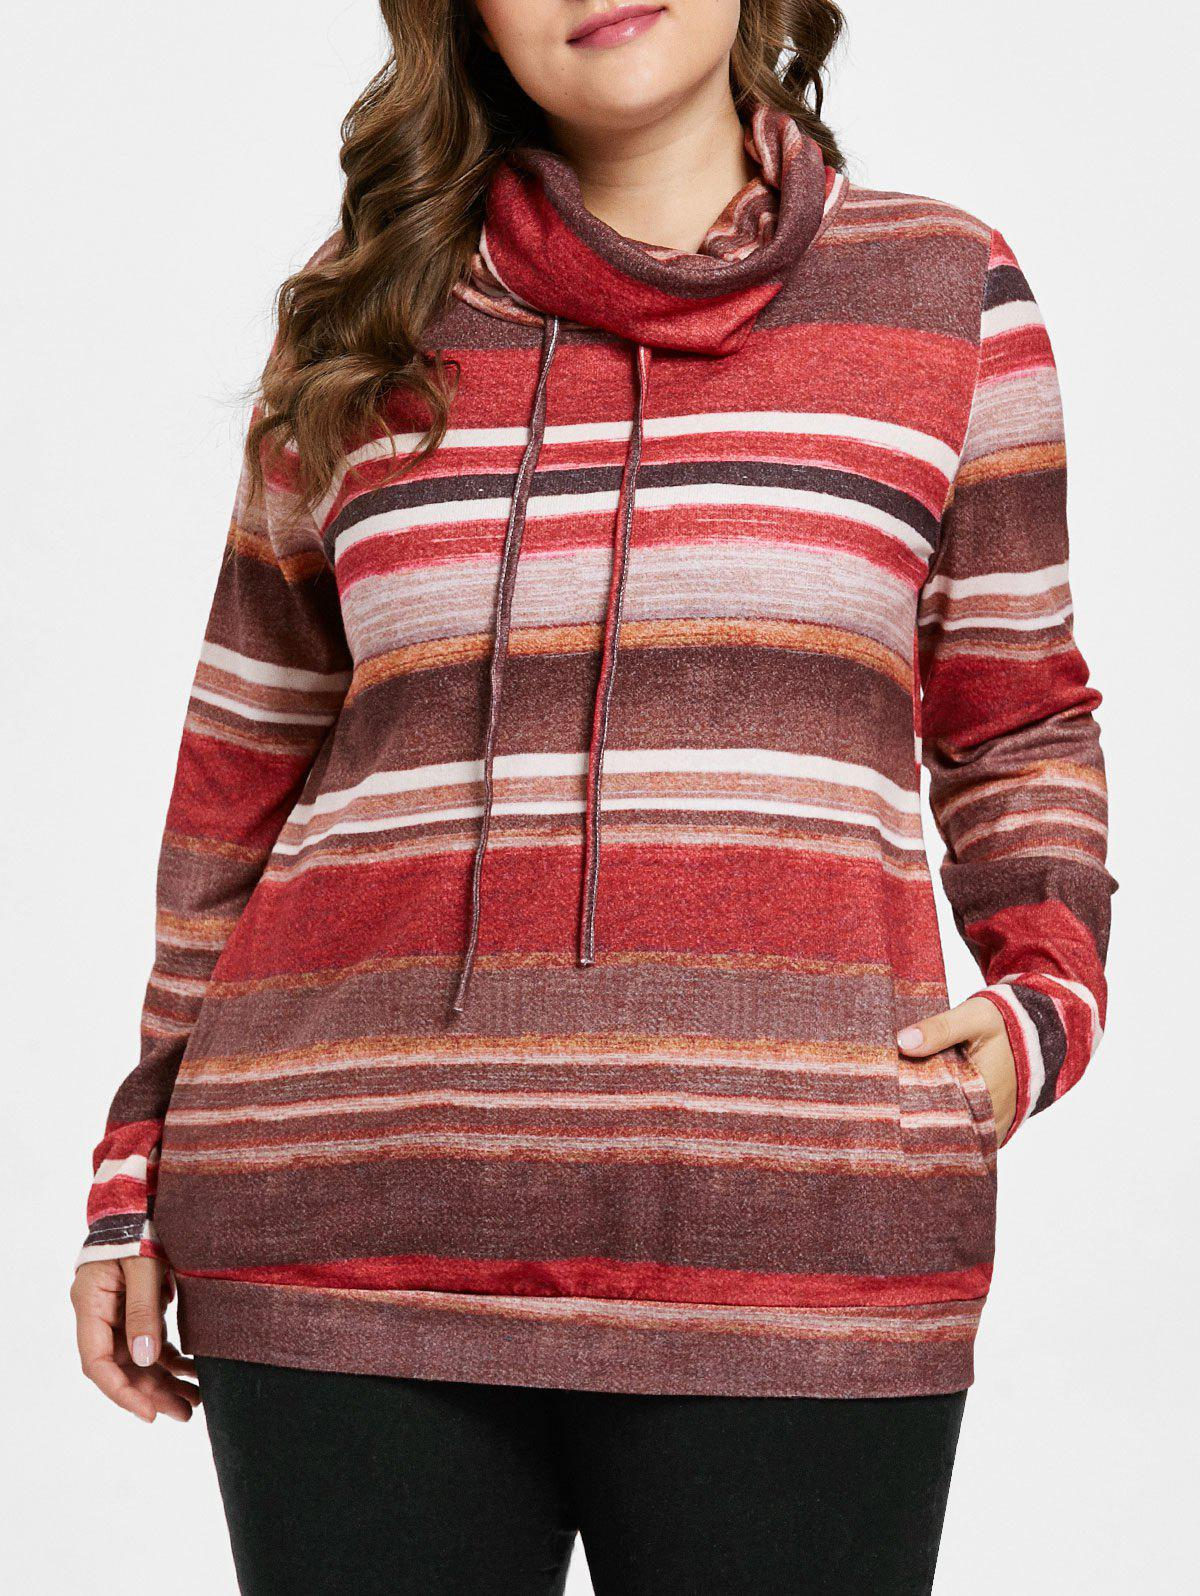 Drawstring Plus Size Striped Sweatshirt - multicolor 1X